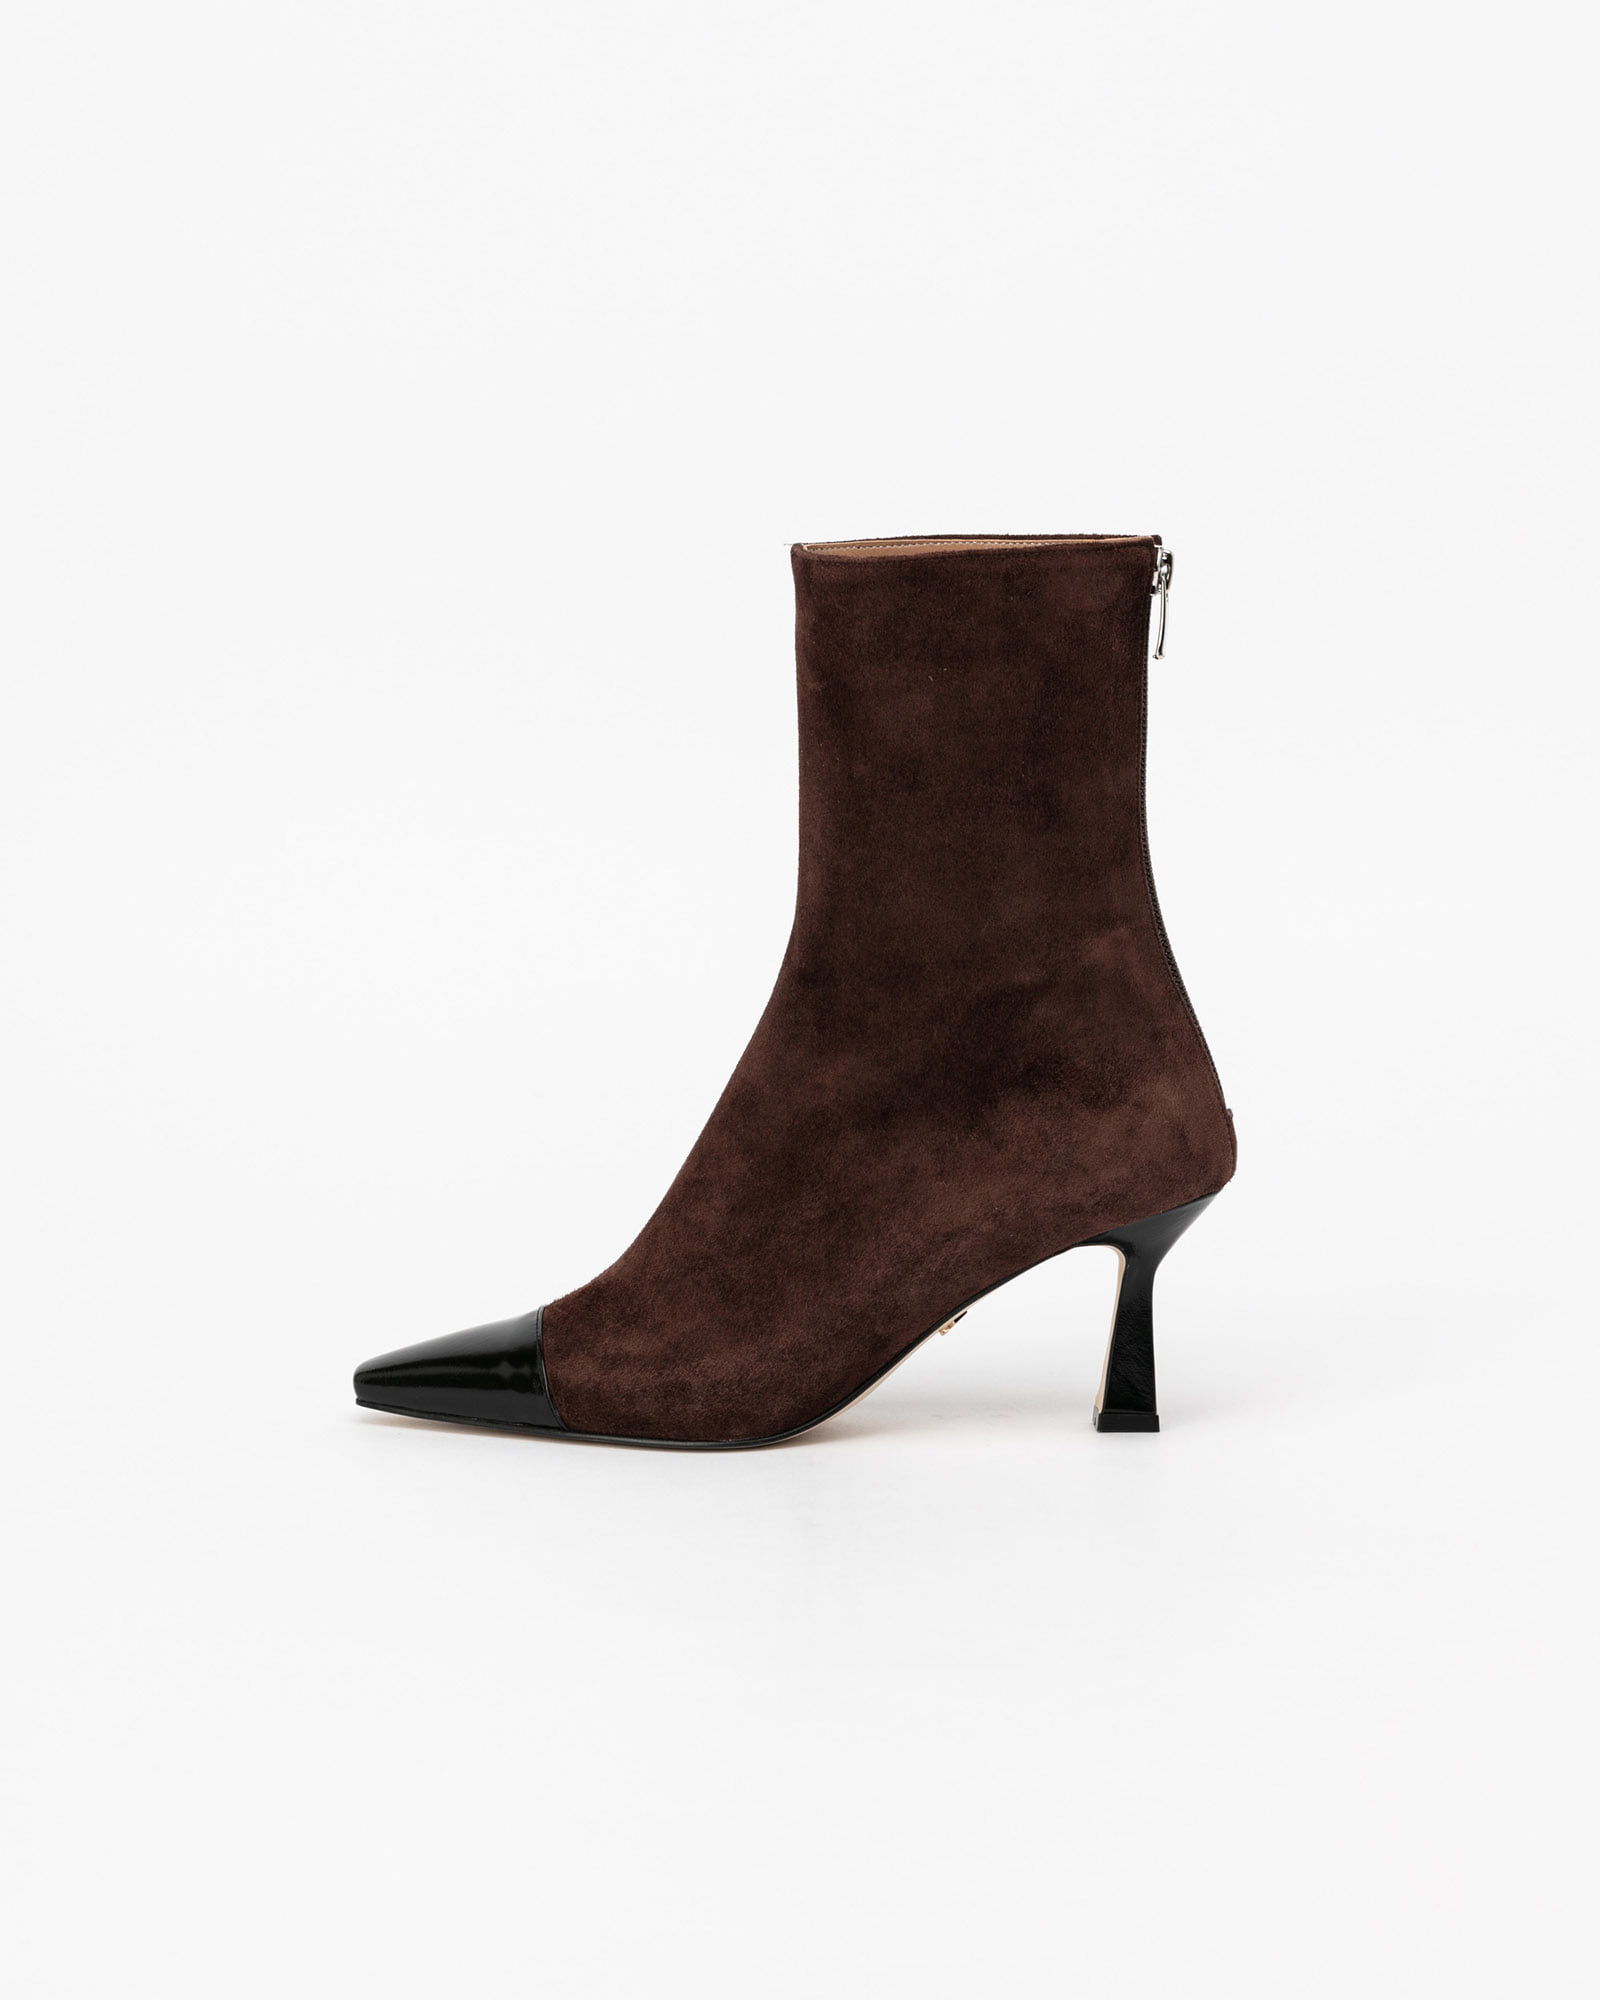 Bella Boots in Dark Brown with Black Toe